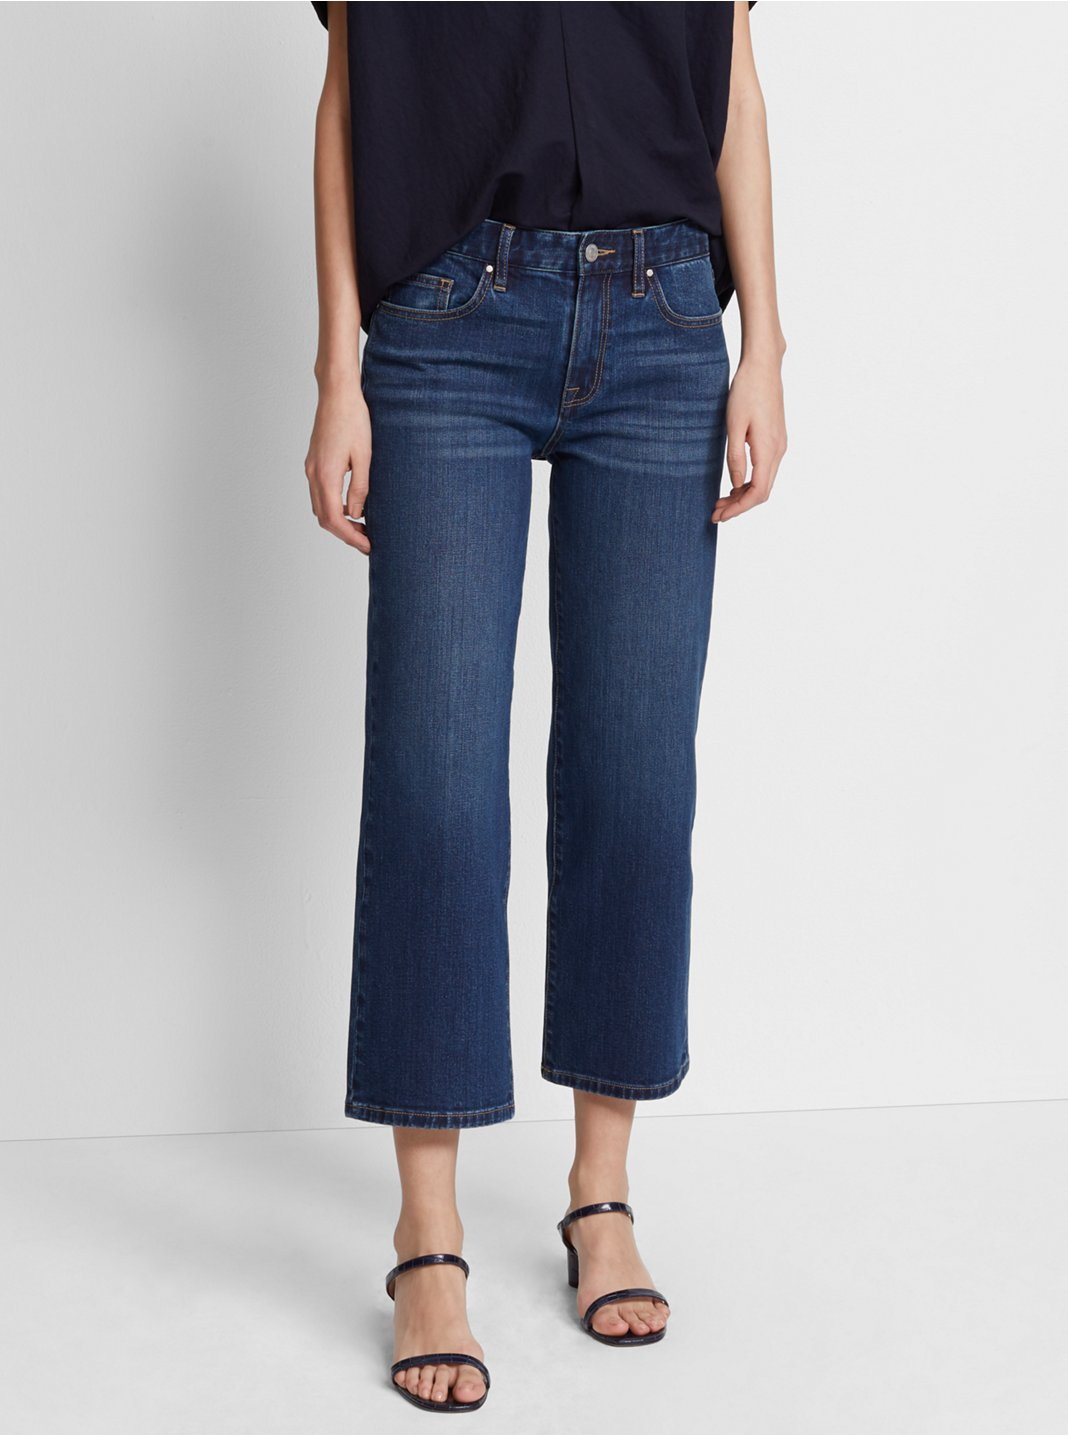 Leileh Straight Crop Denim